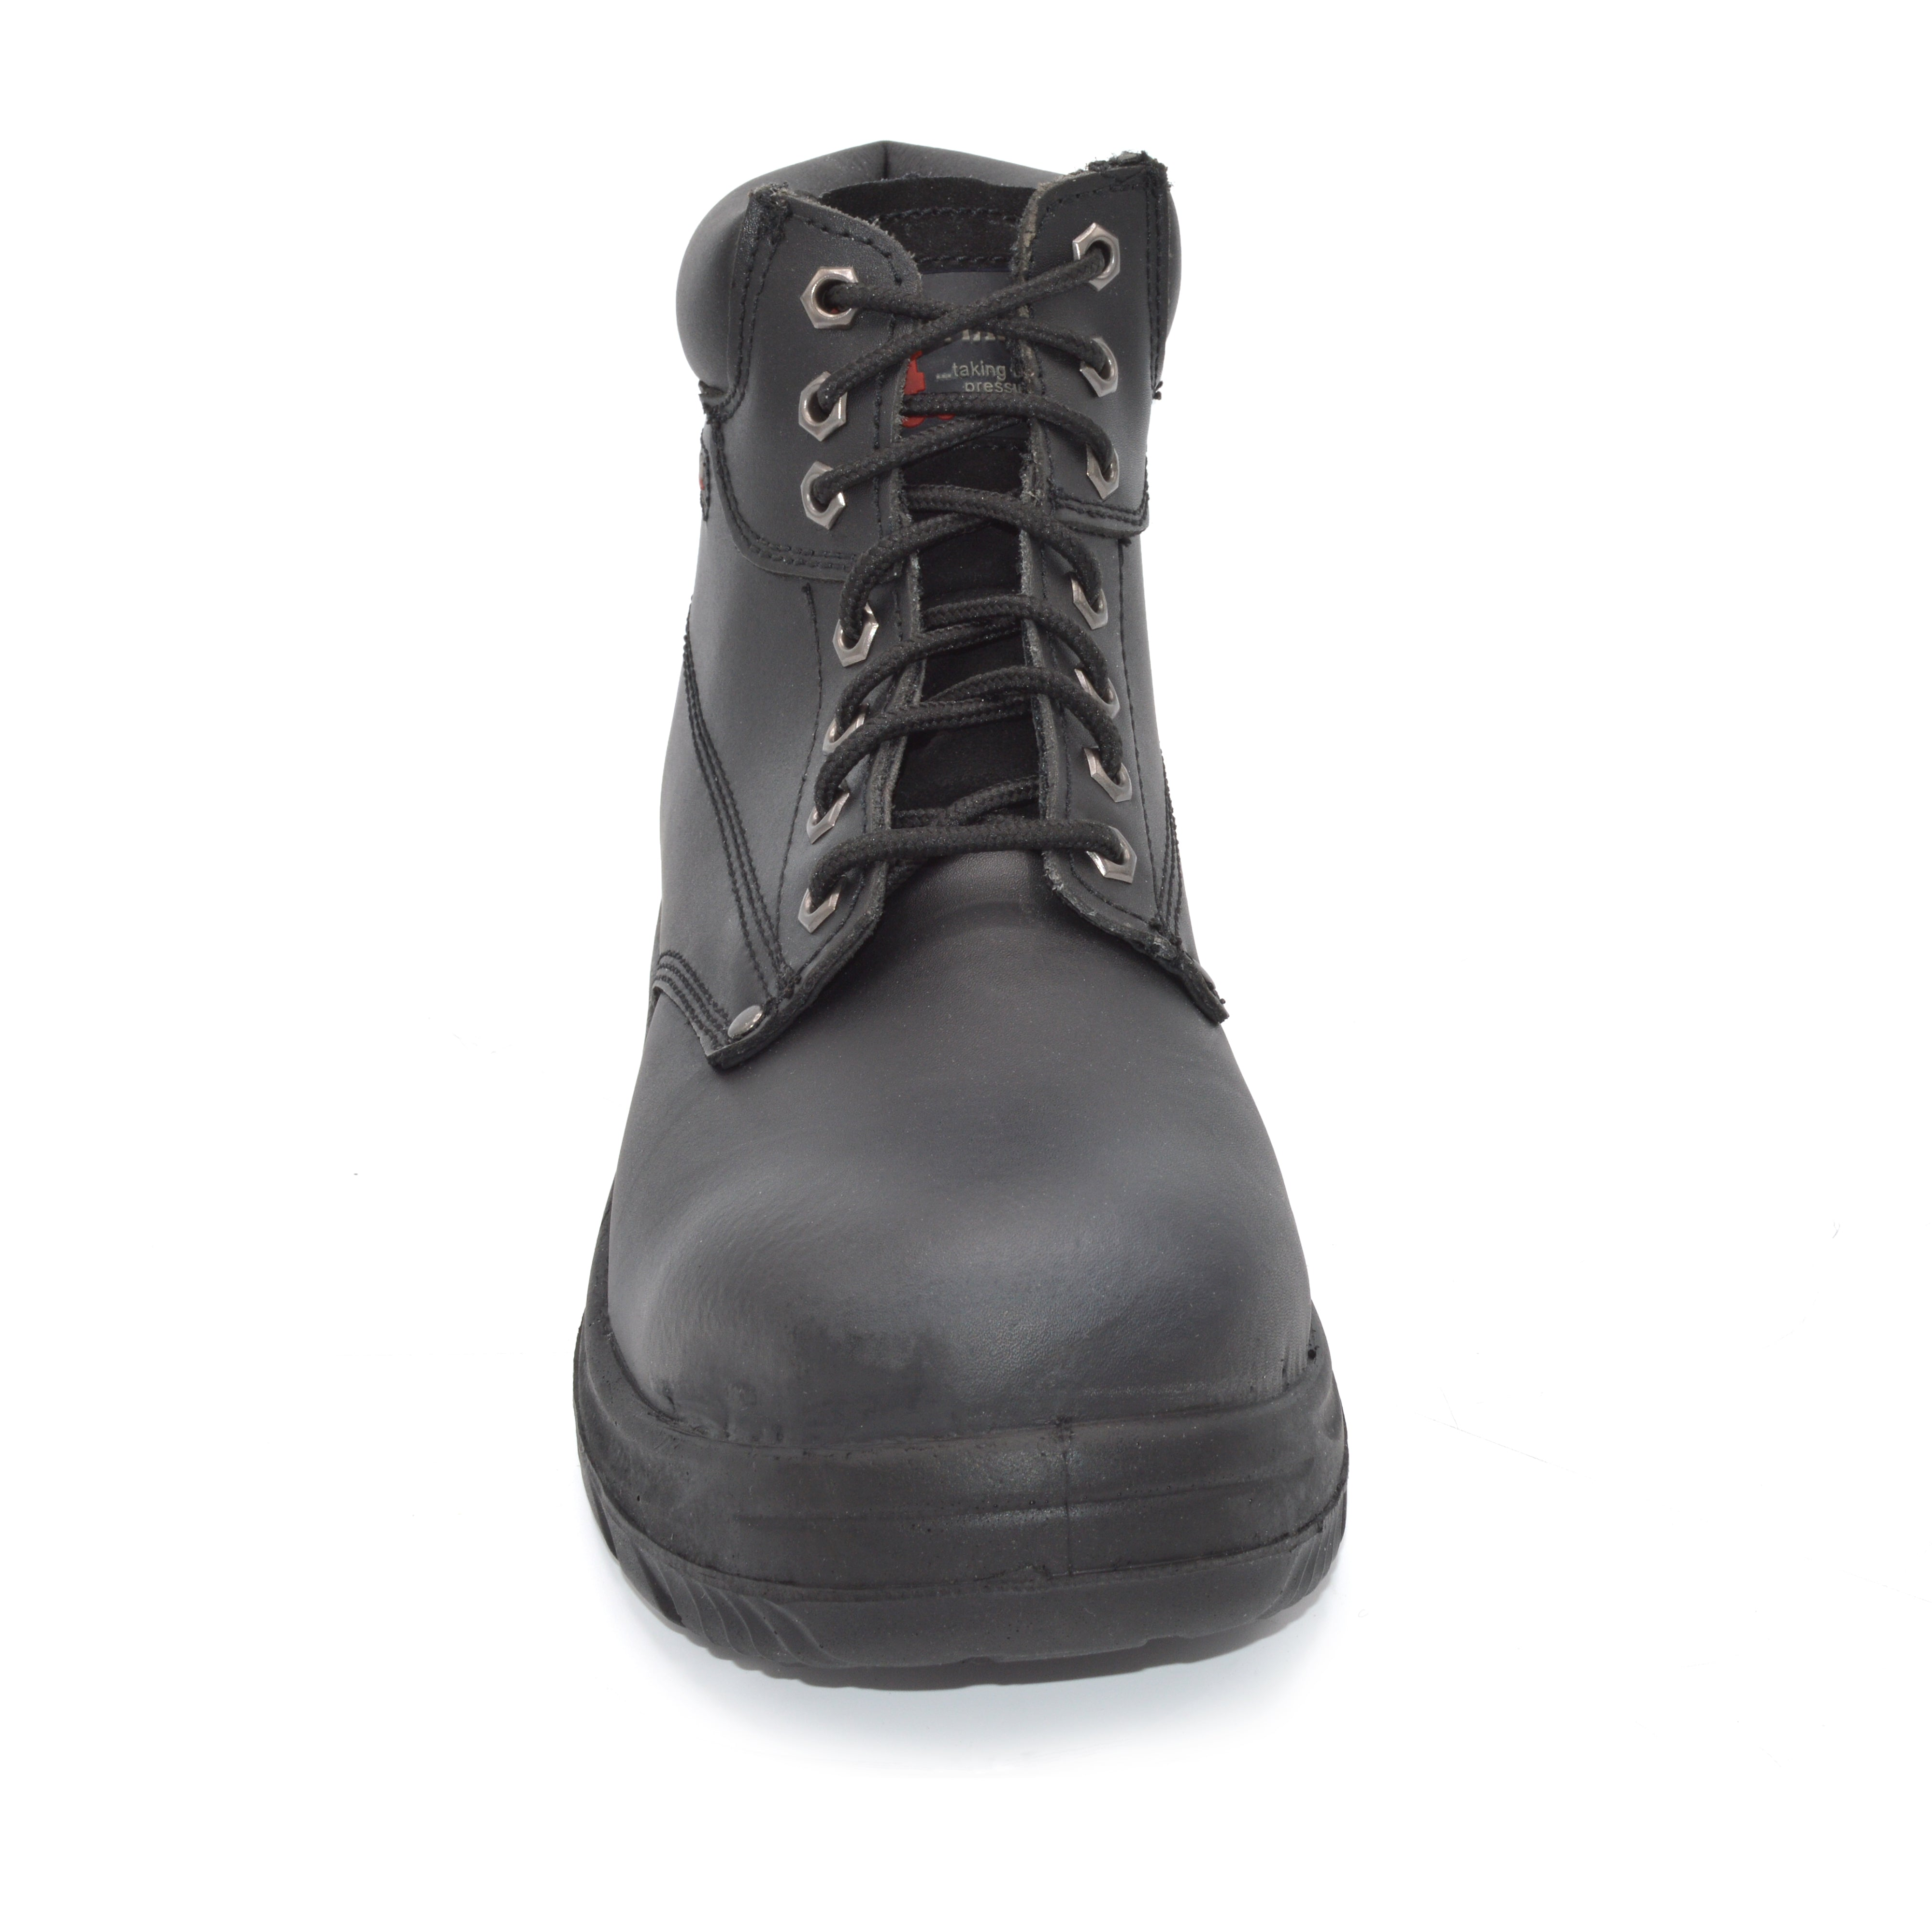 Grafters M9503A With Steel Toe Cap - 4E Fitting